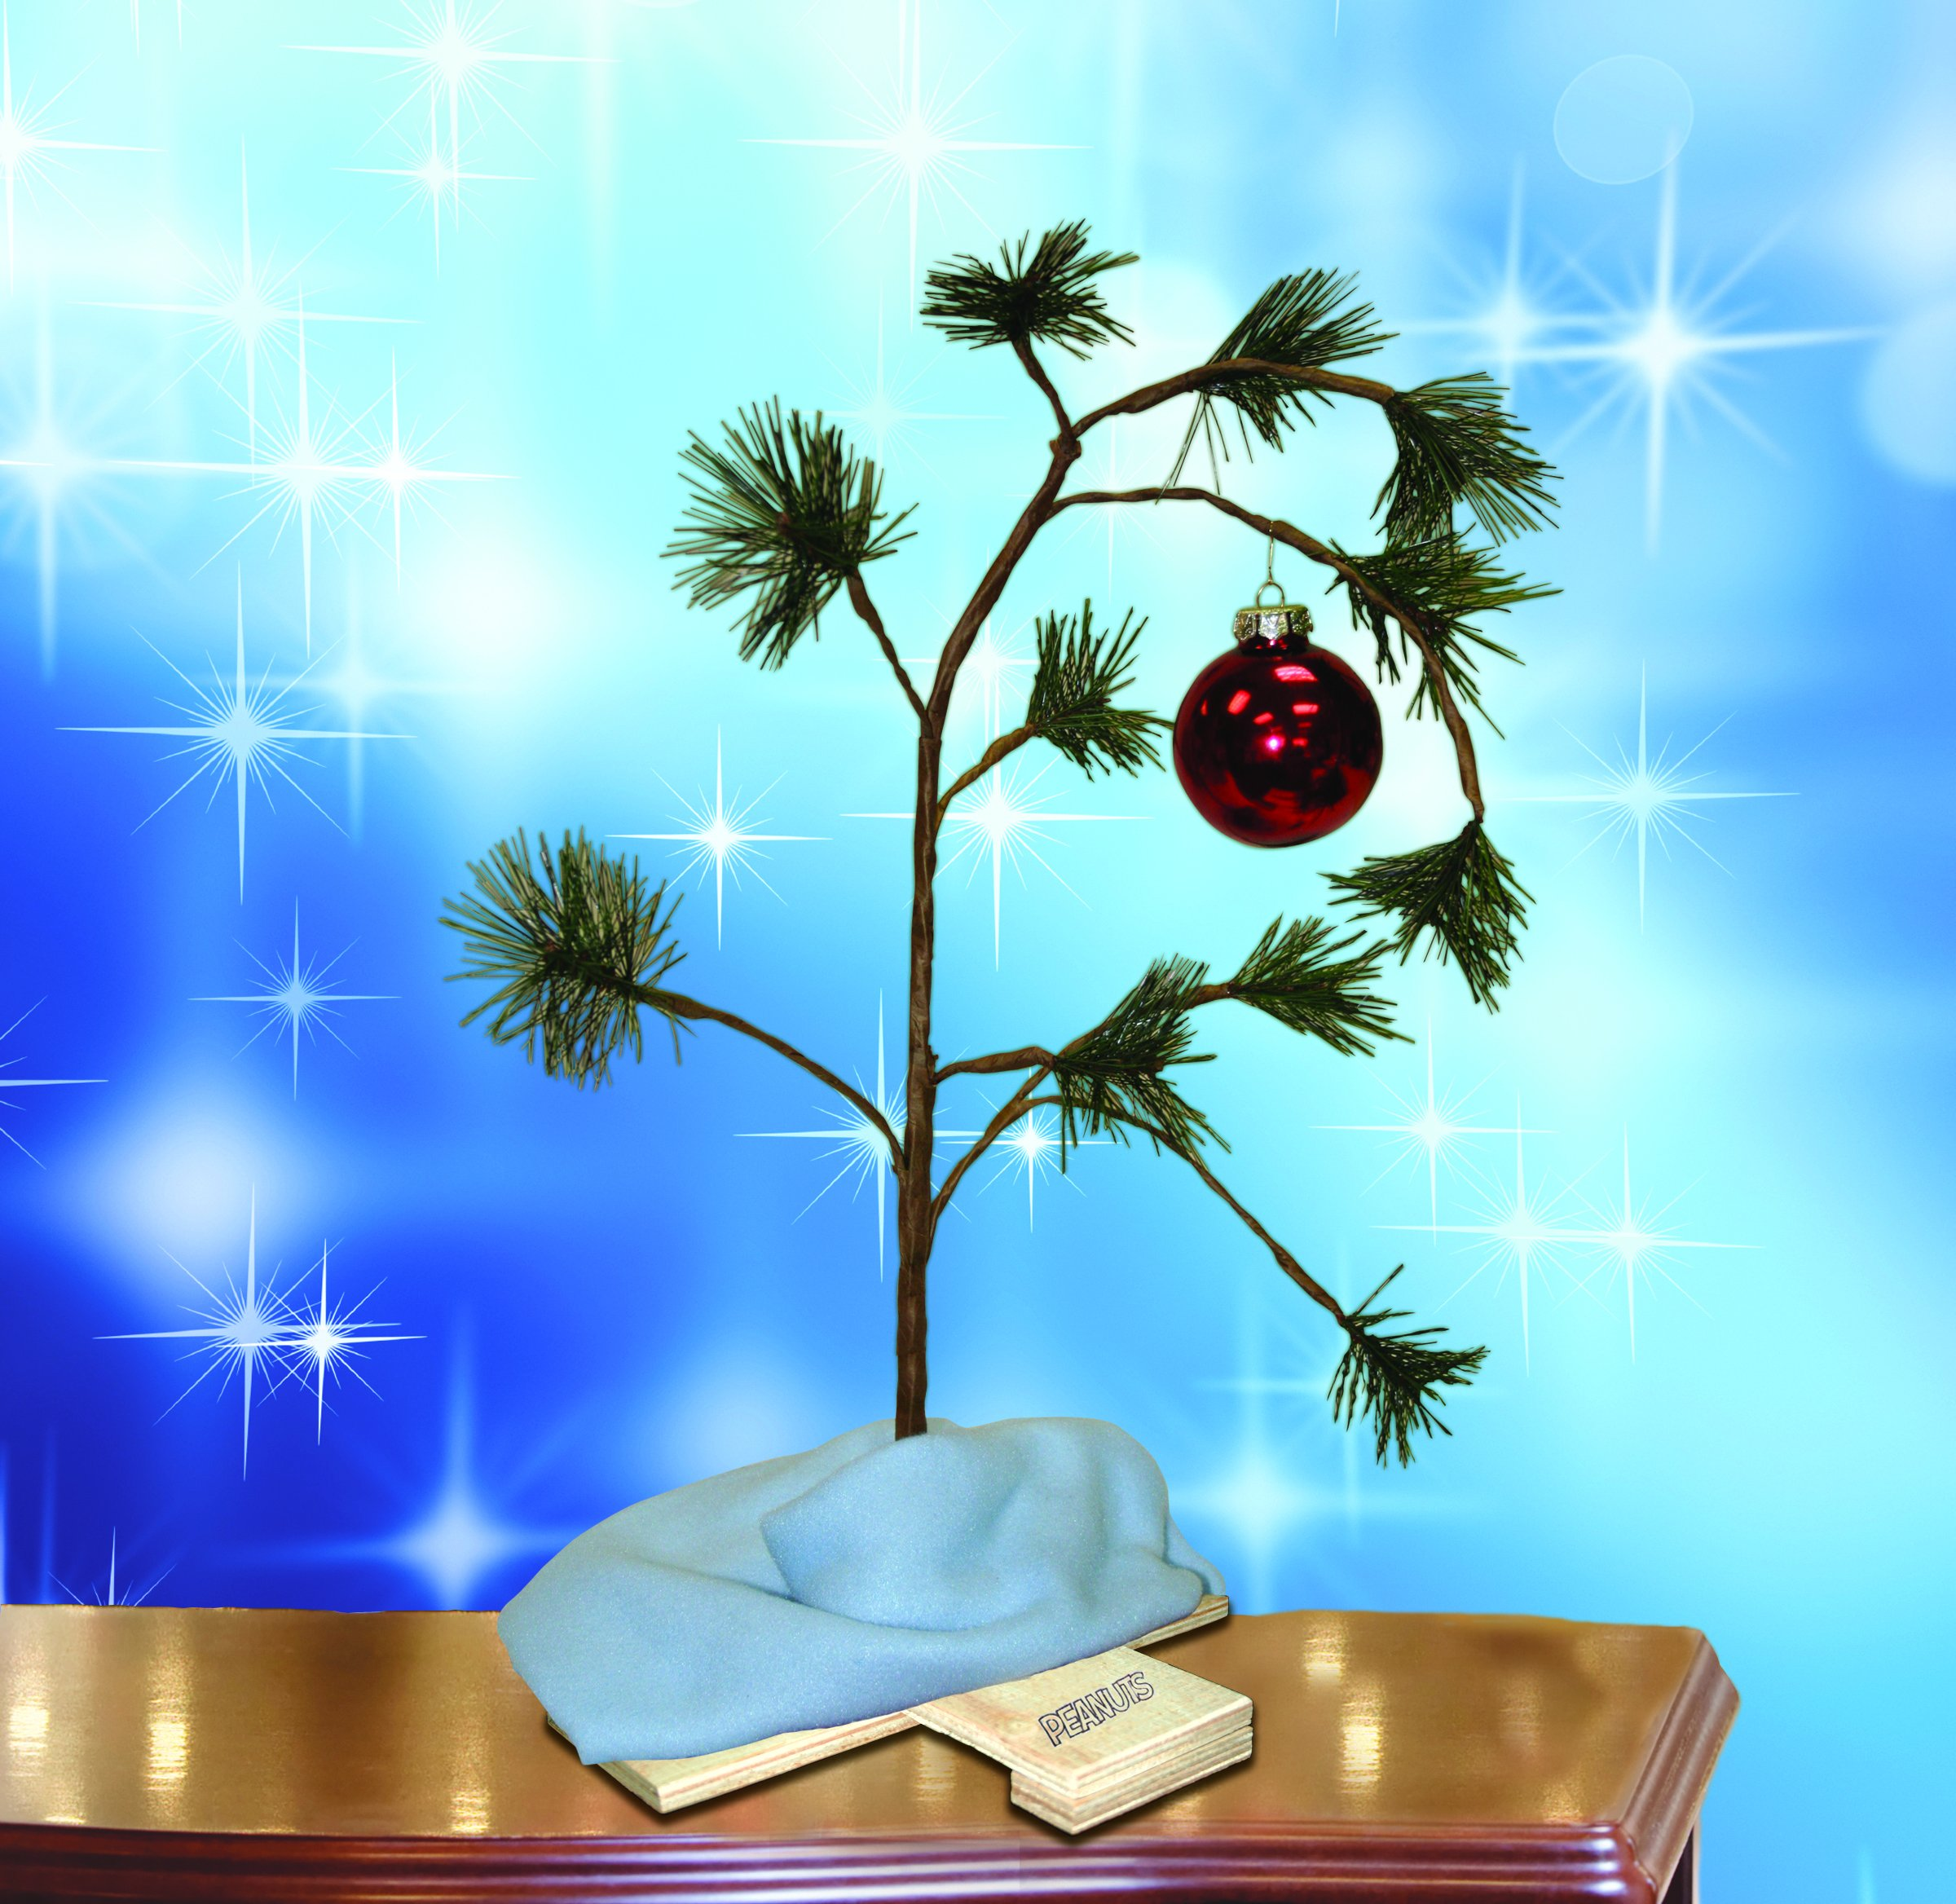 ProductWorks 24-inch Peanuts Charlie Brown Musical Christmas Tree with Linus Blanket by ProductWorks (Image #2)